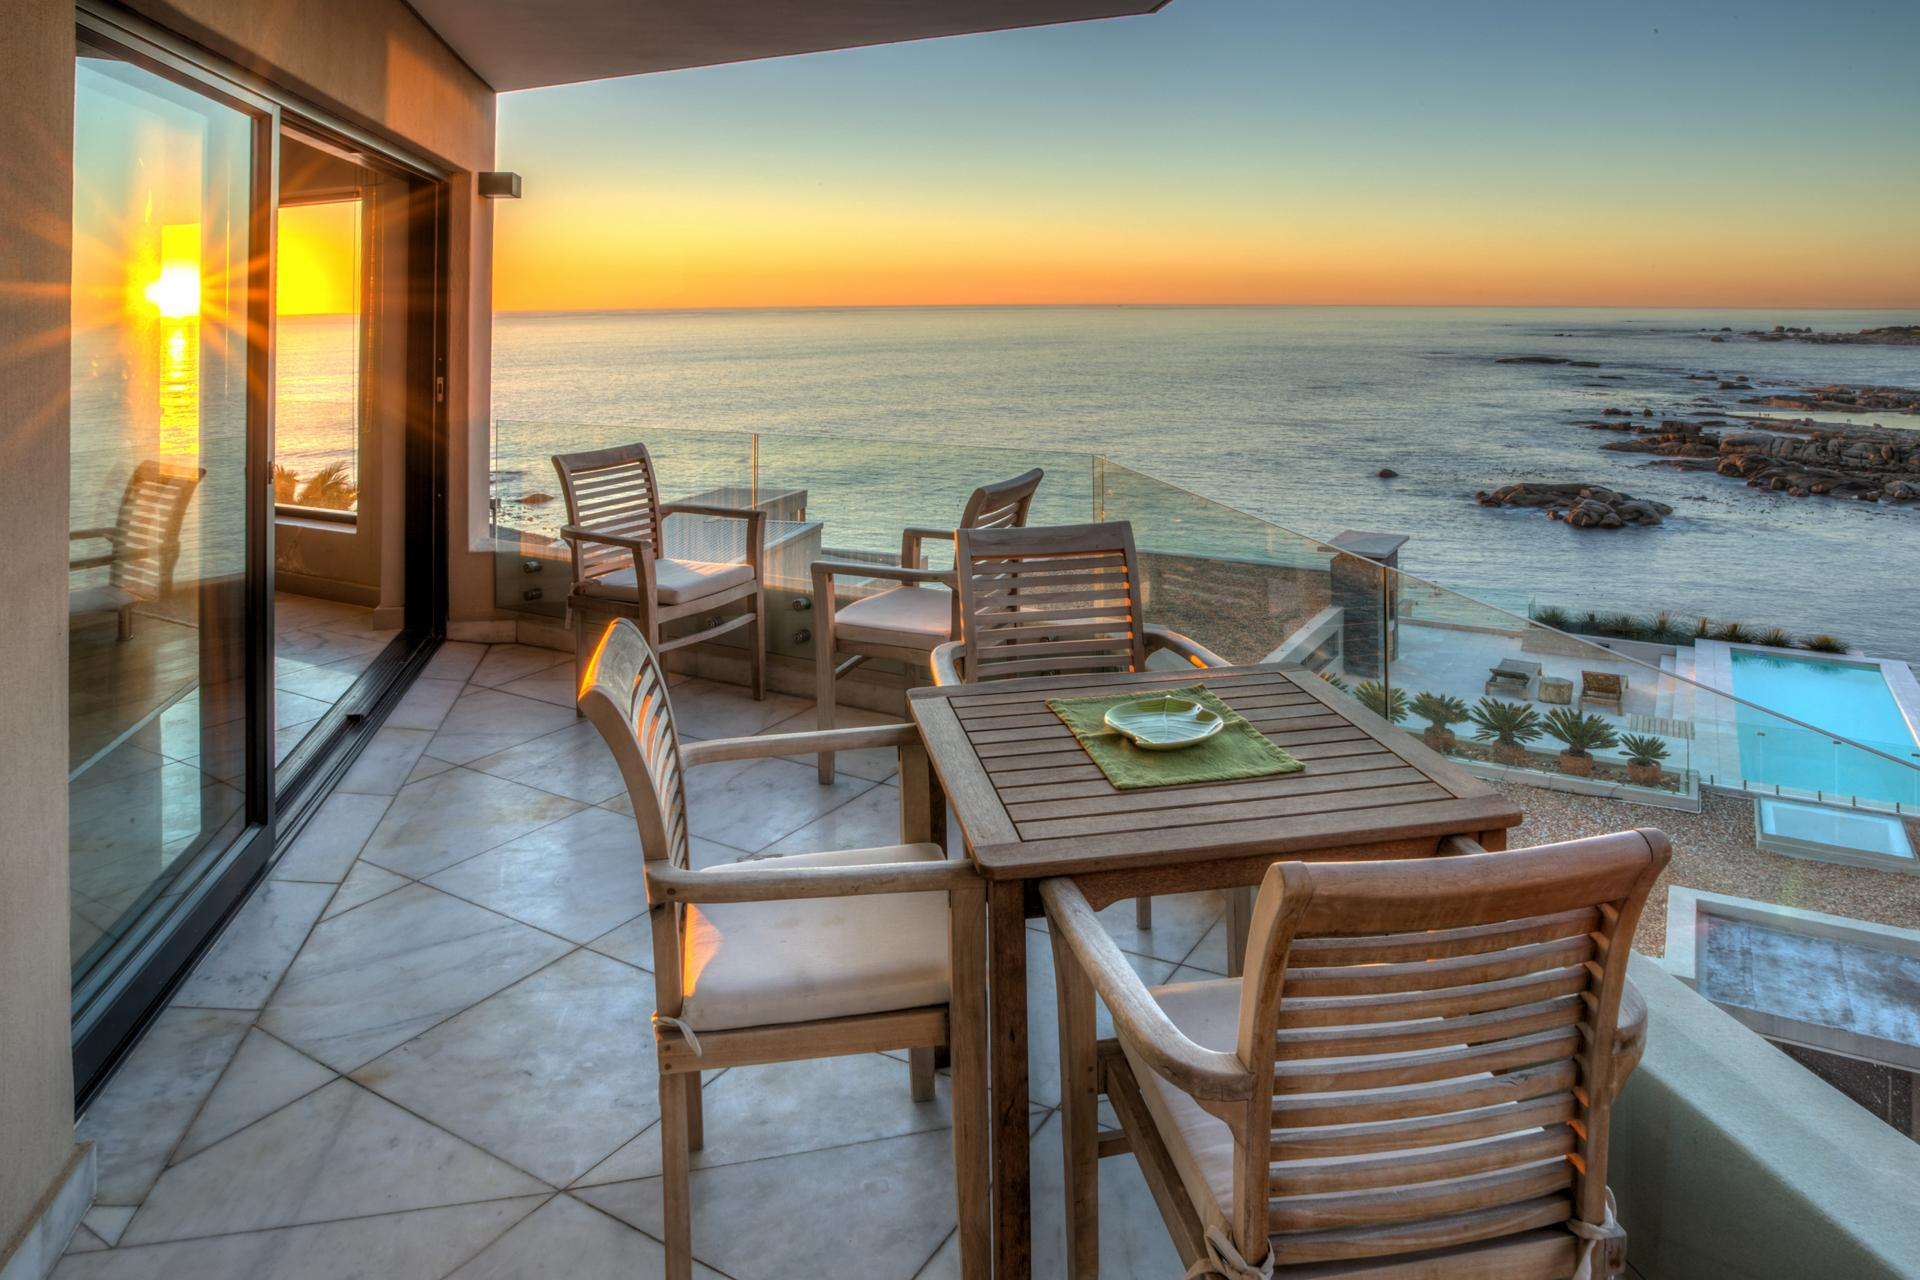 Houghton Heights A in Camps Bay, Cape Town, South Africa